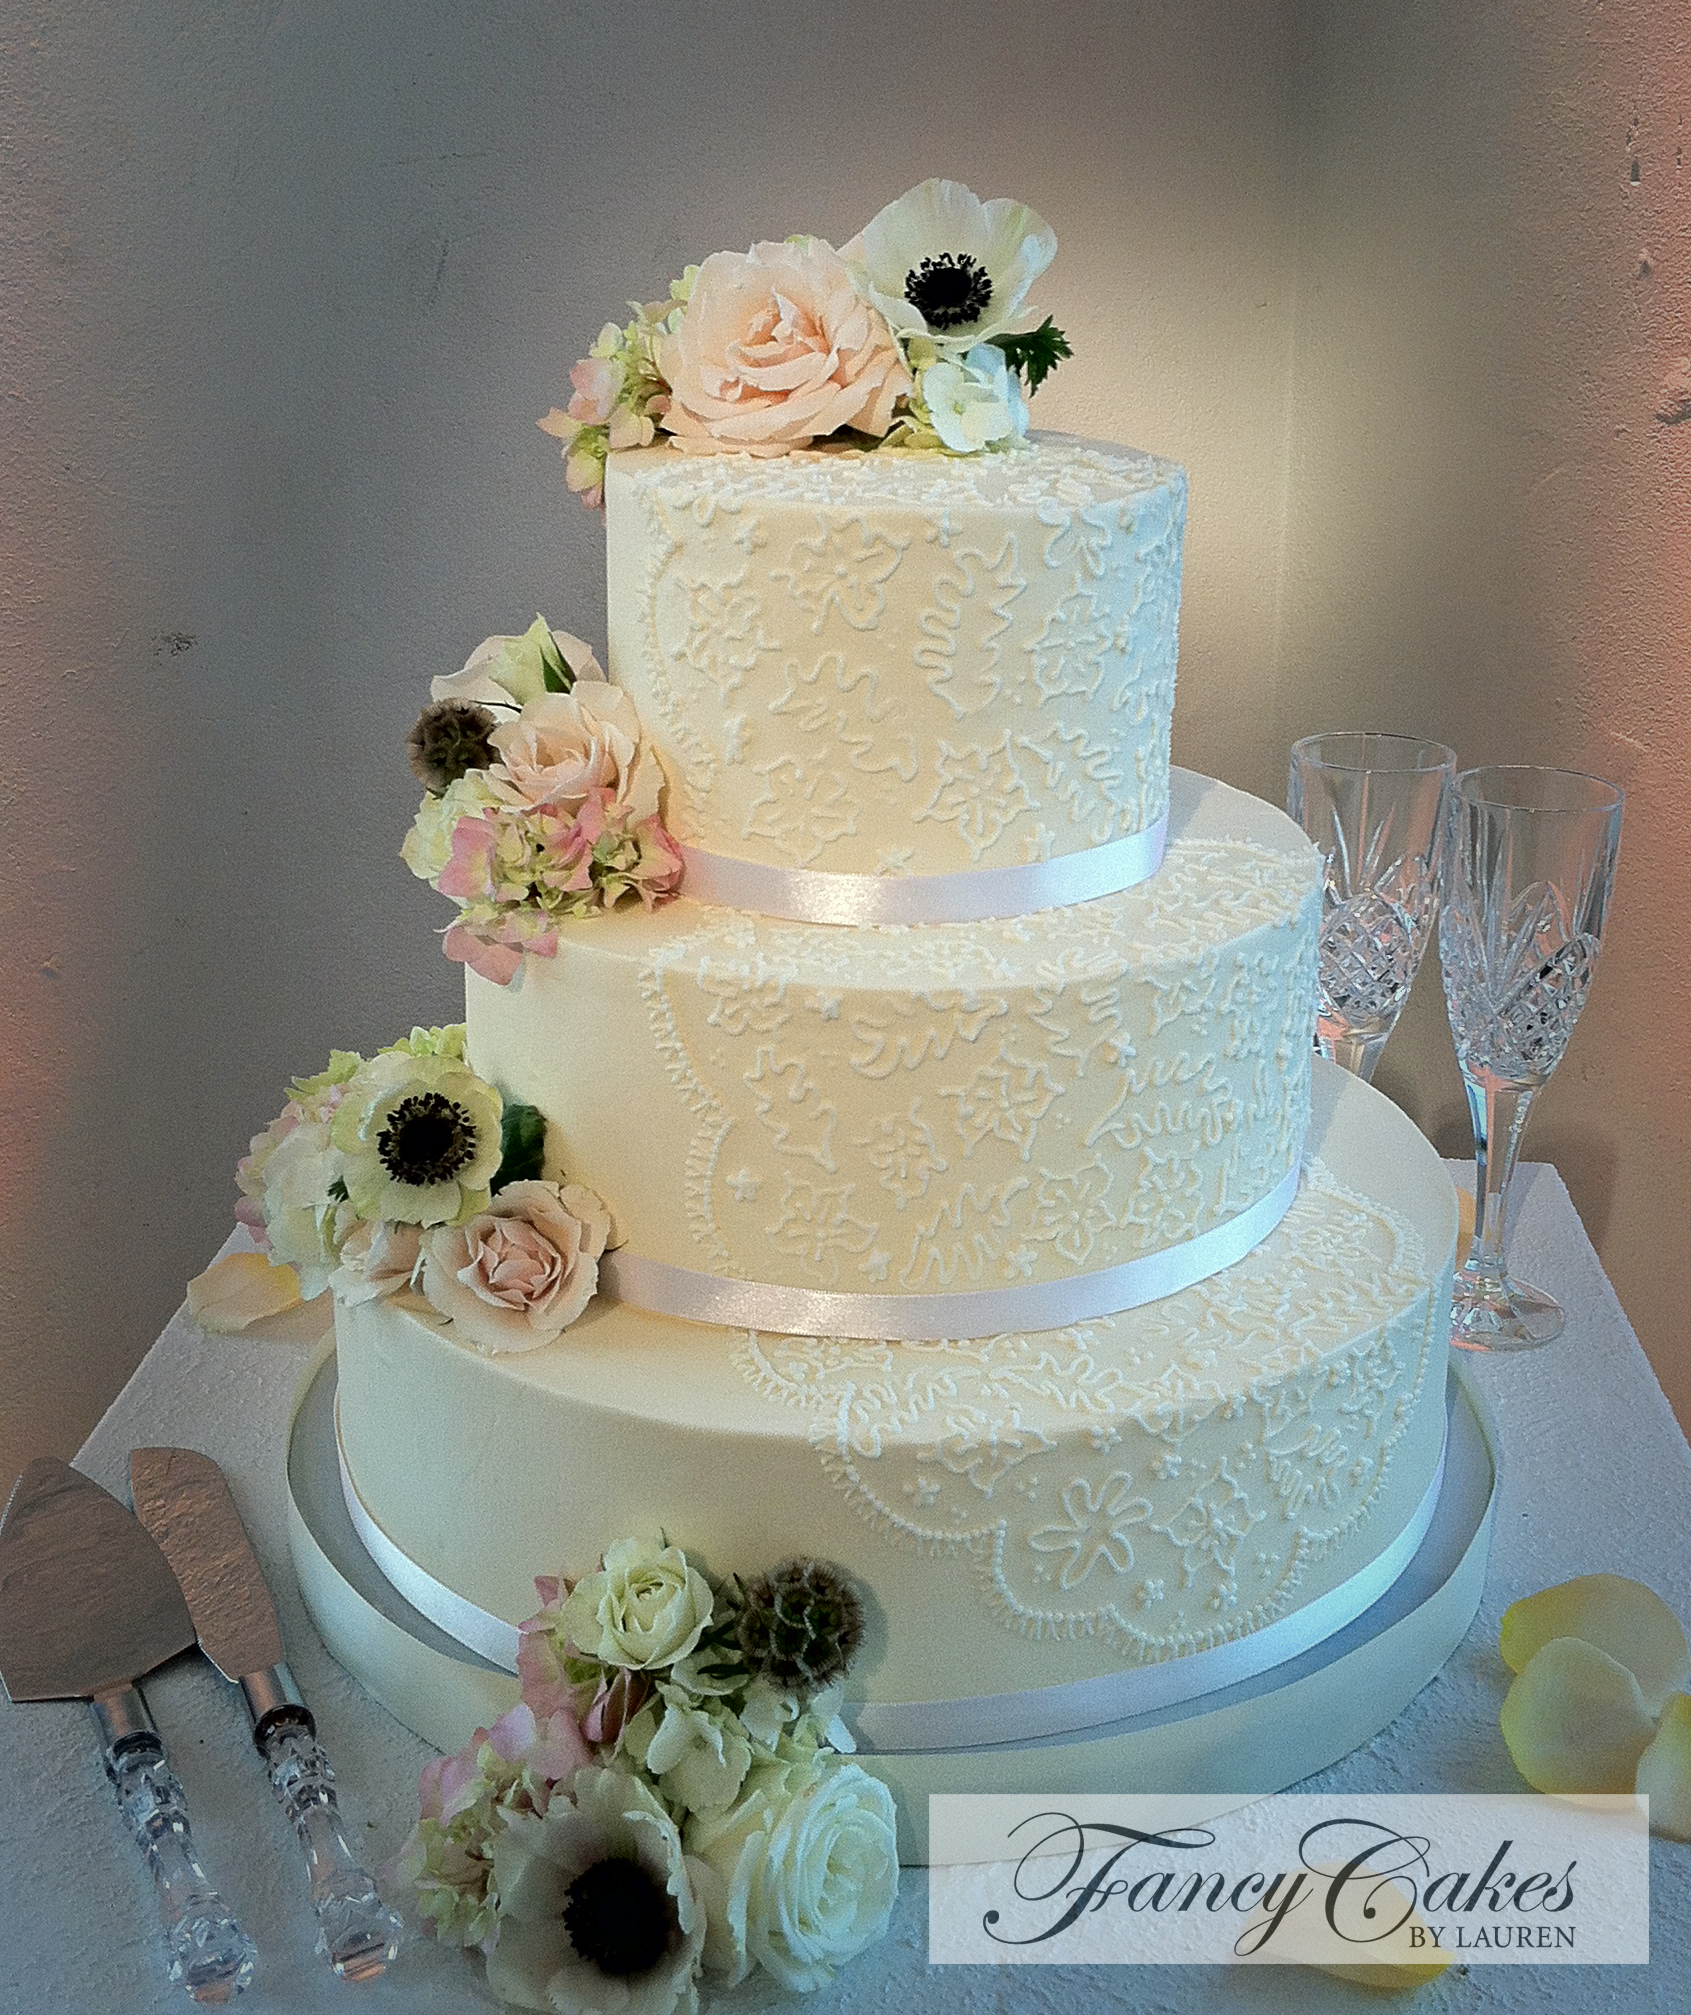 1000 images about Wedding Cake Piped on Pinterest